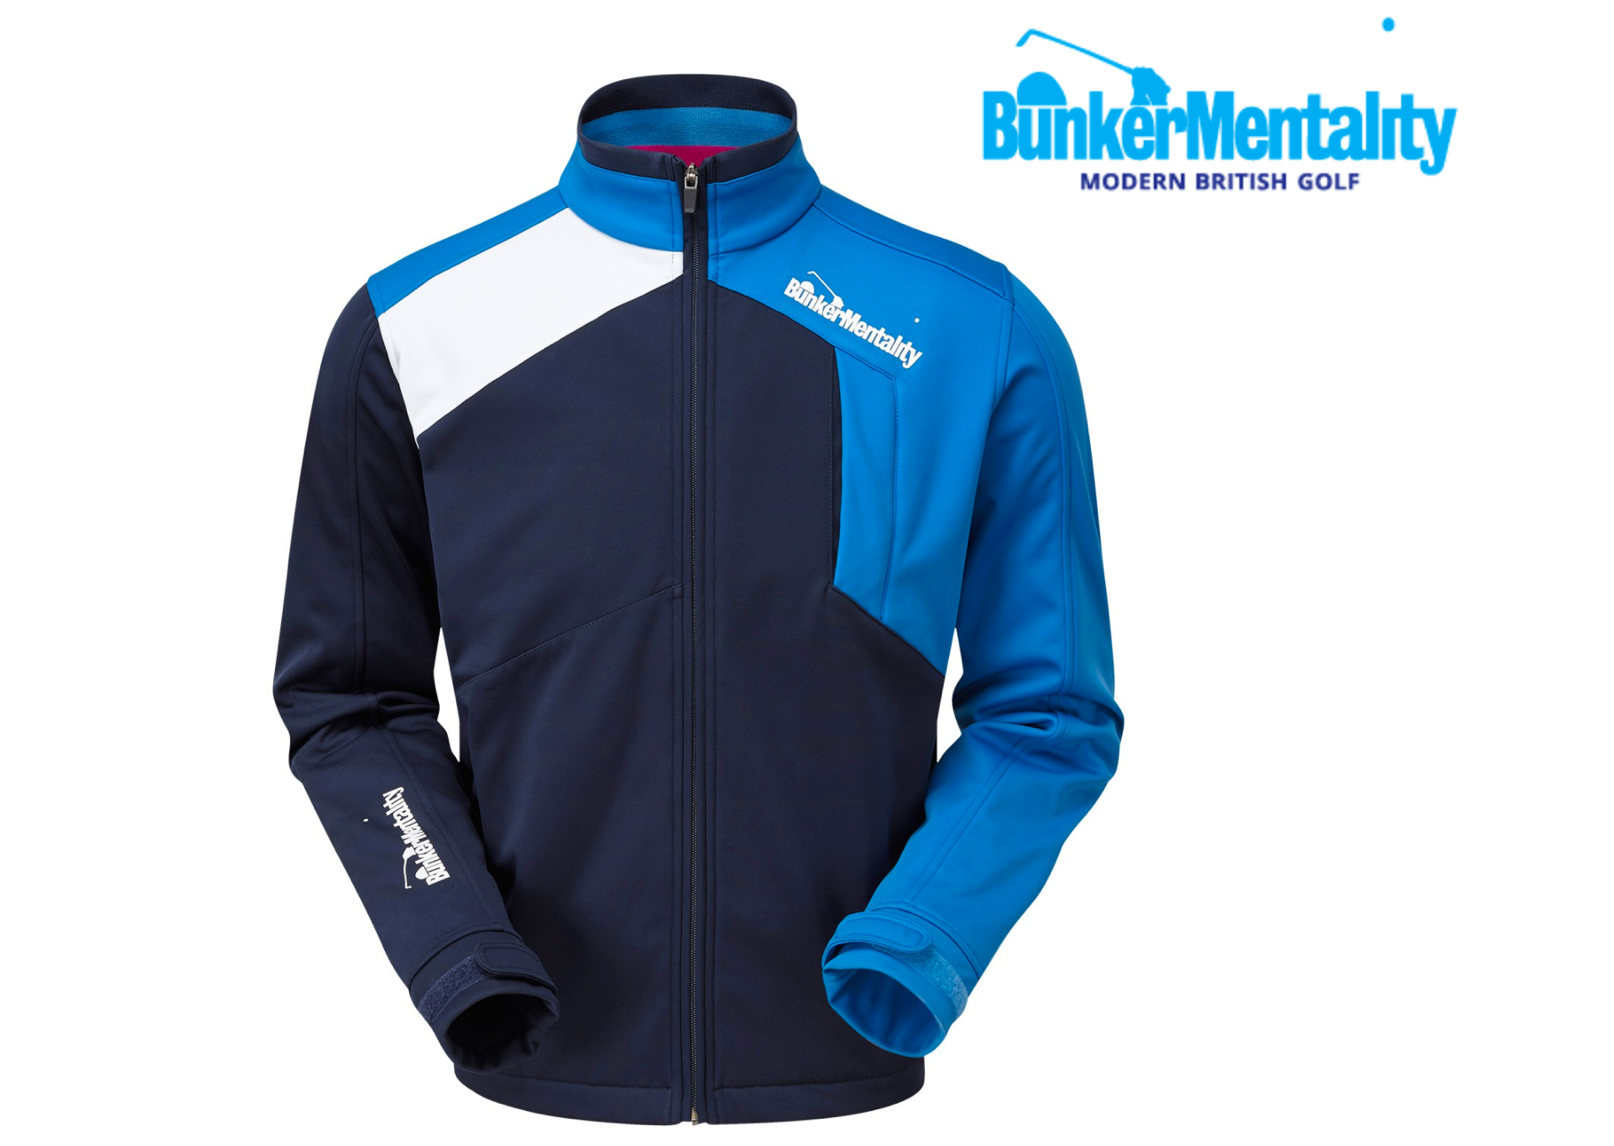 WIN A BUNKER MENTALITY MANCIA WIND JACKET sweepstakes